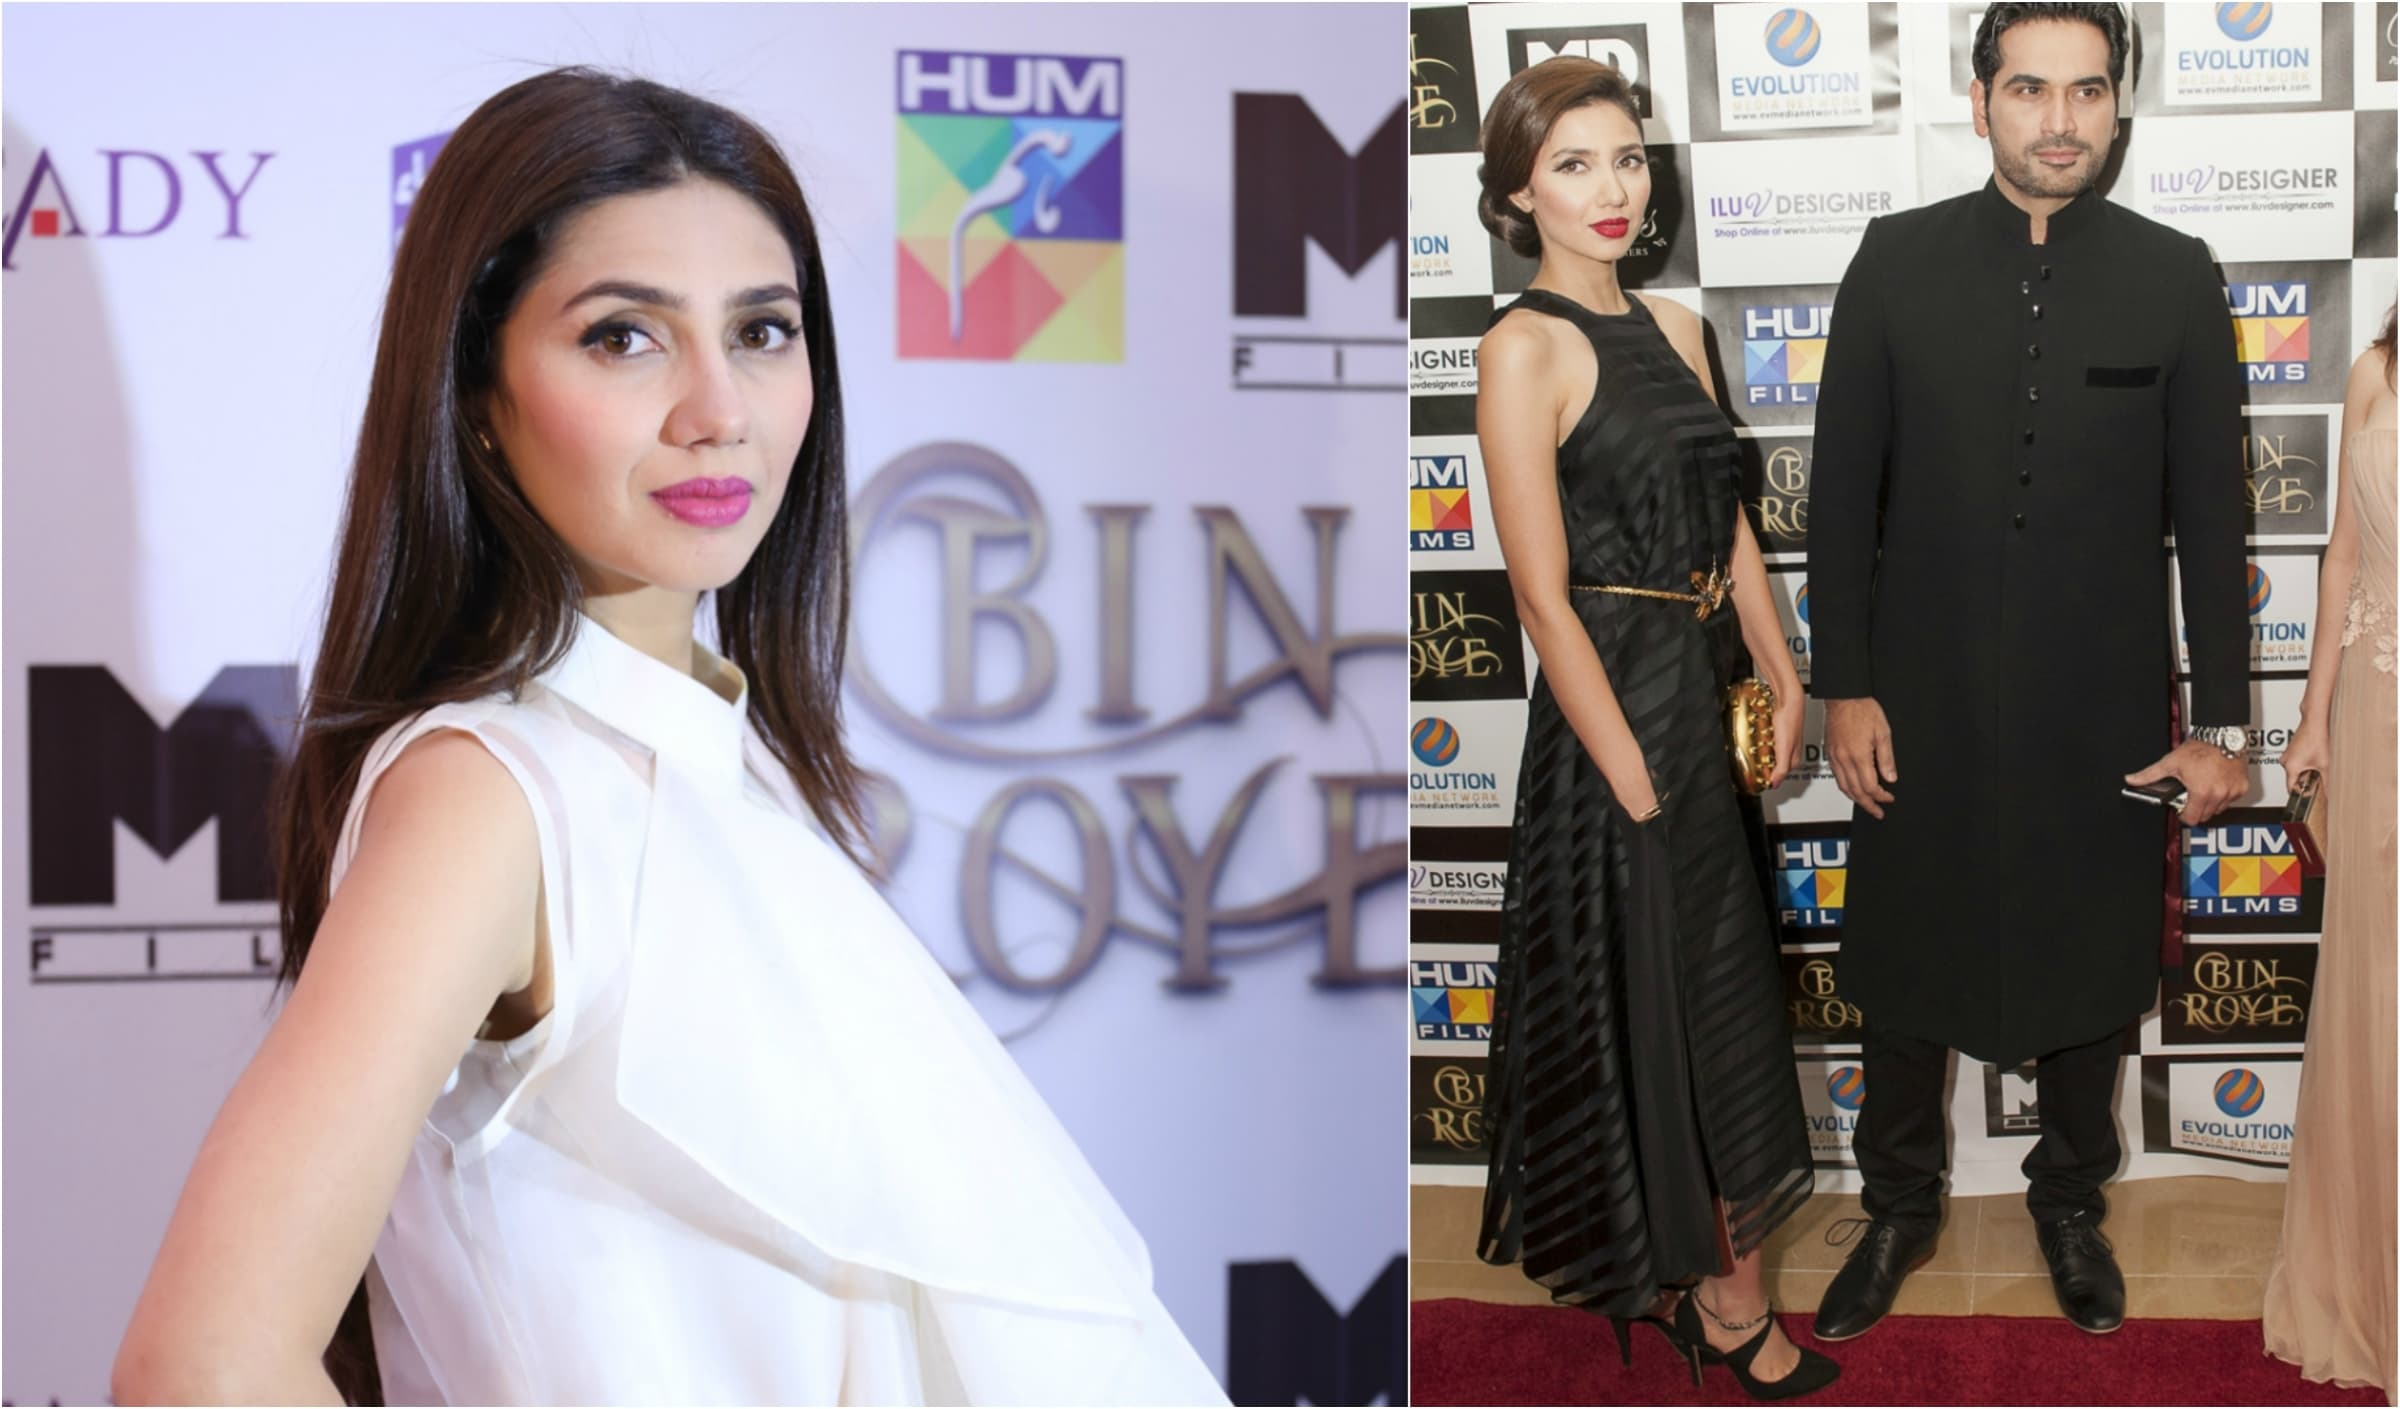 Mahira dressed in Feeha Jamshed (L) and in MUSE (R)